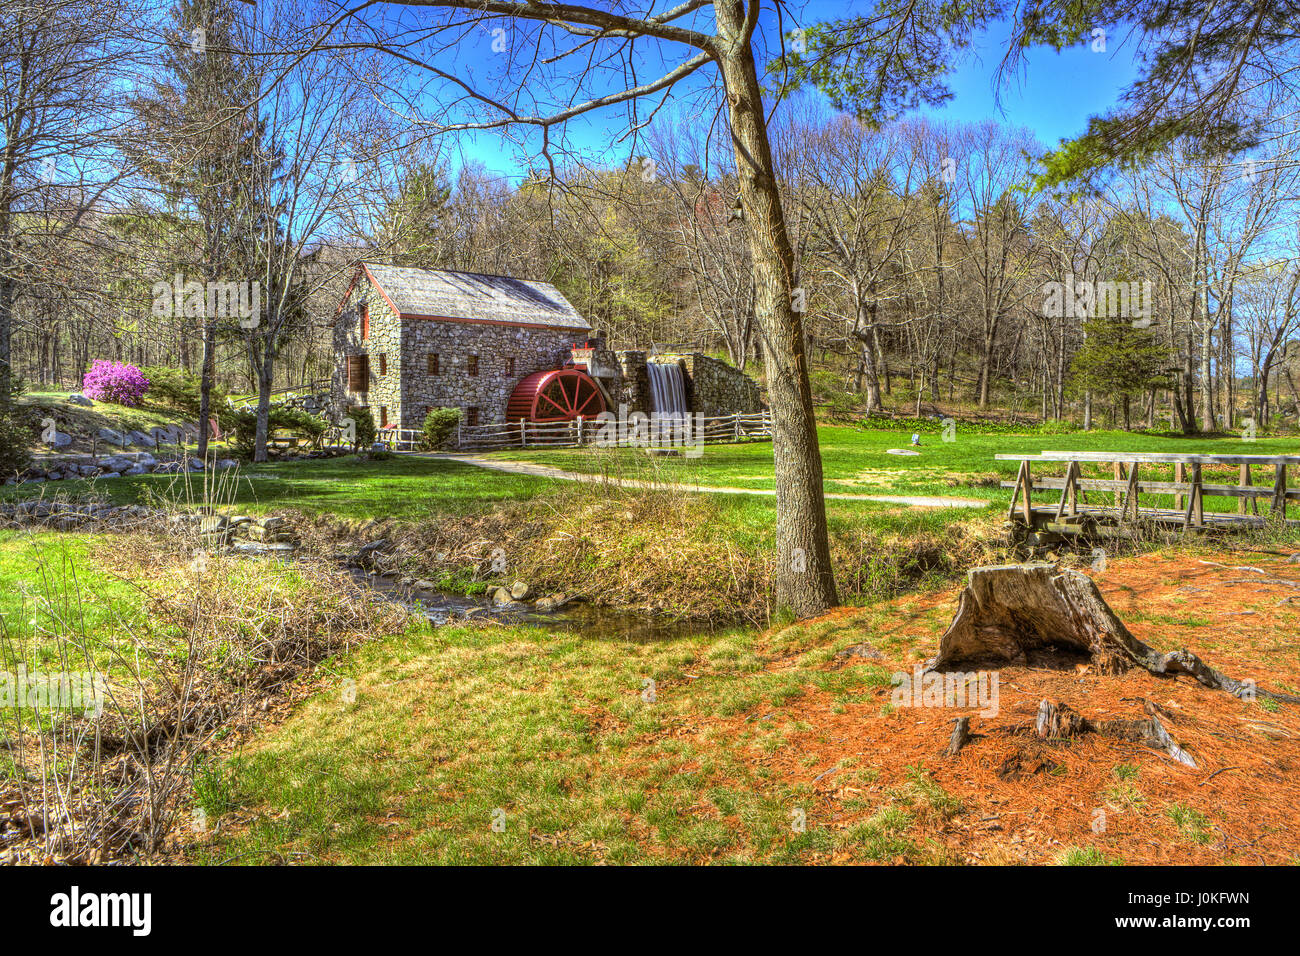 Facade of Longfellow's Wayside Inn Grist Mill built by Henry Ford in 1924 at Sudbury, Massachusetts. - Stock Image